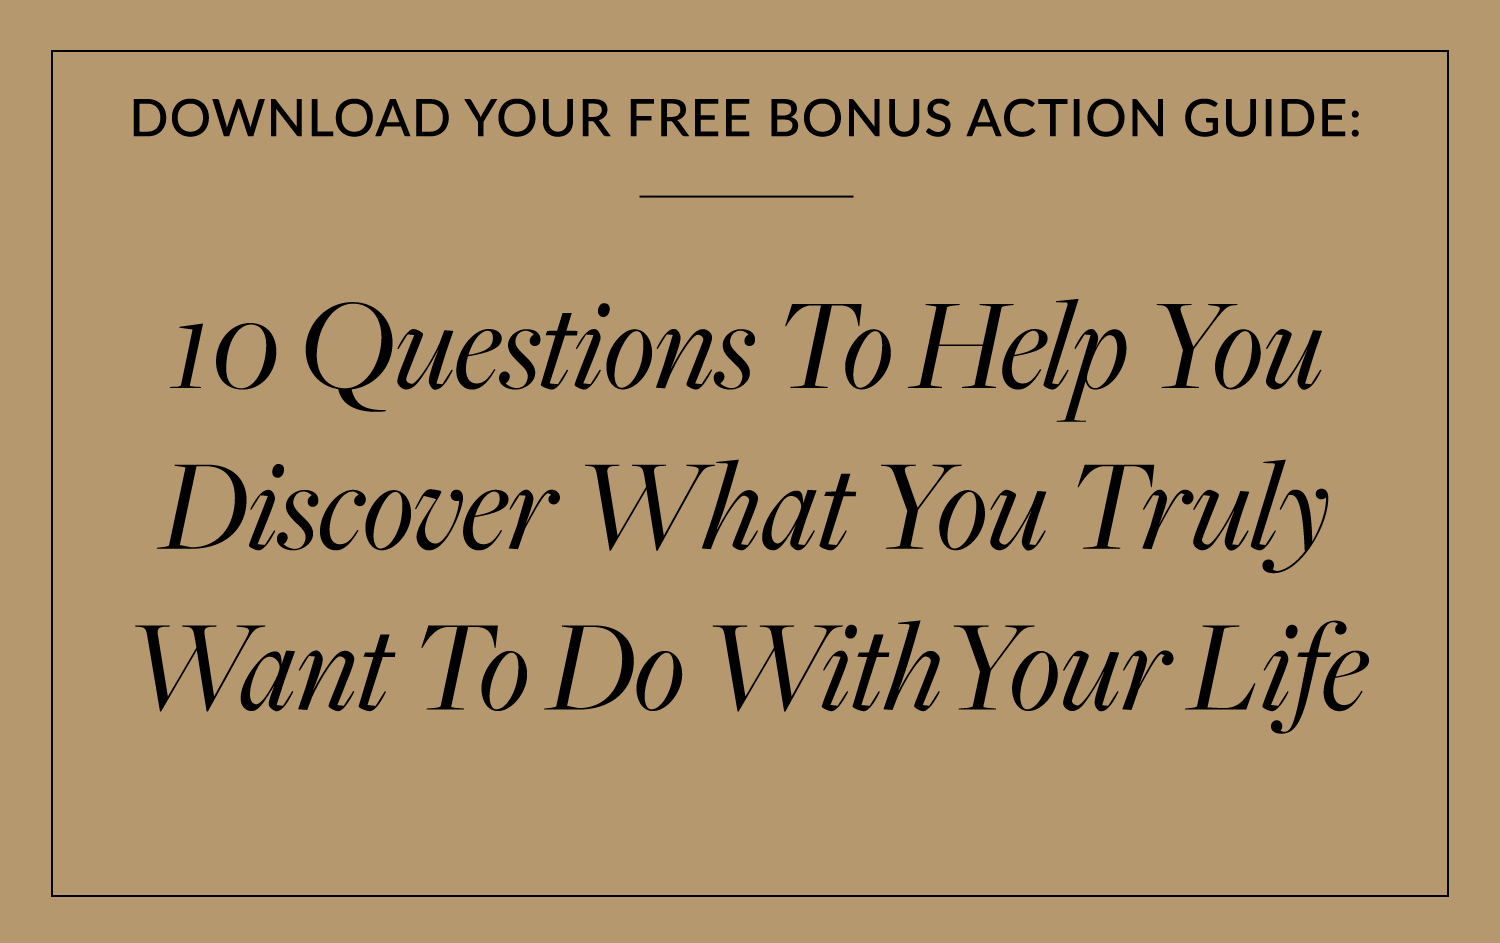 10 Questions To Help You Discover What You Truly Want To Do With Your Life